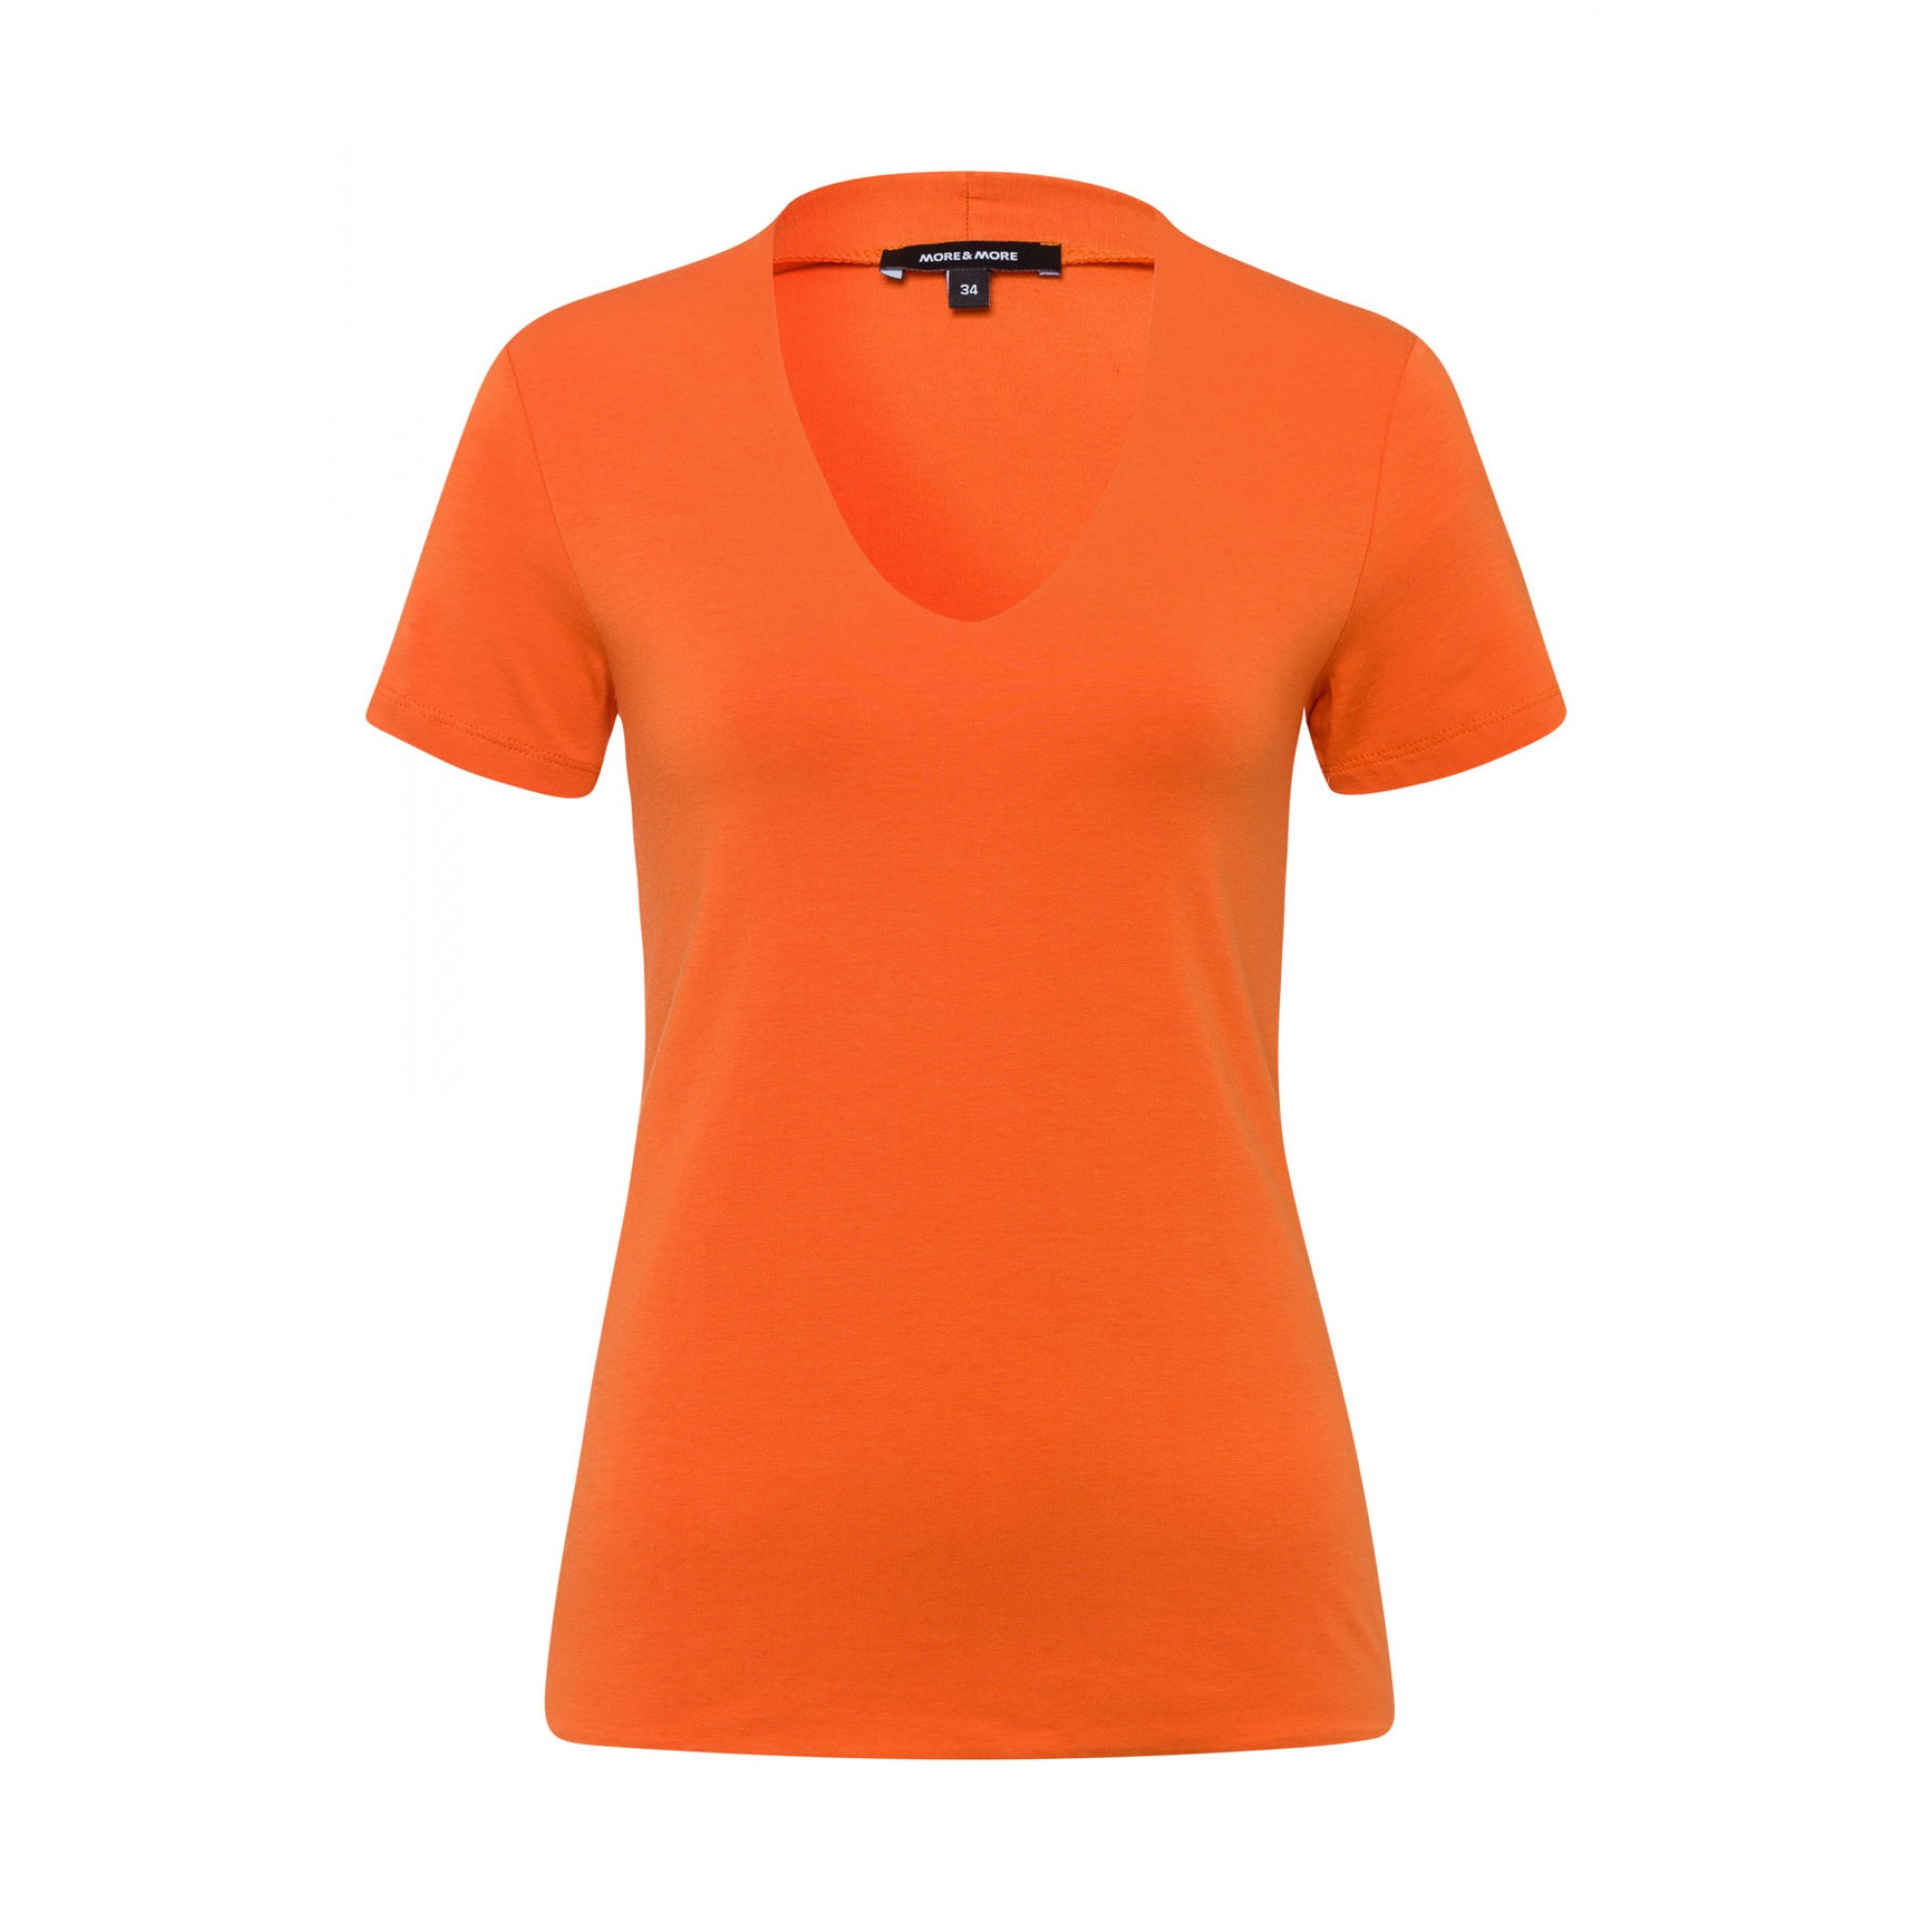 T-Shirt, Baumwolle/Modal, orange 81960082-0431 1